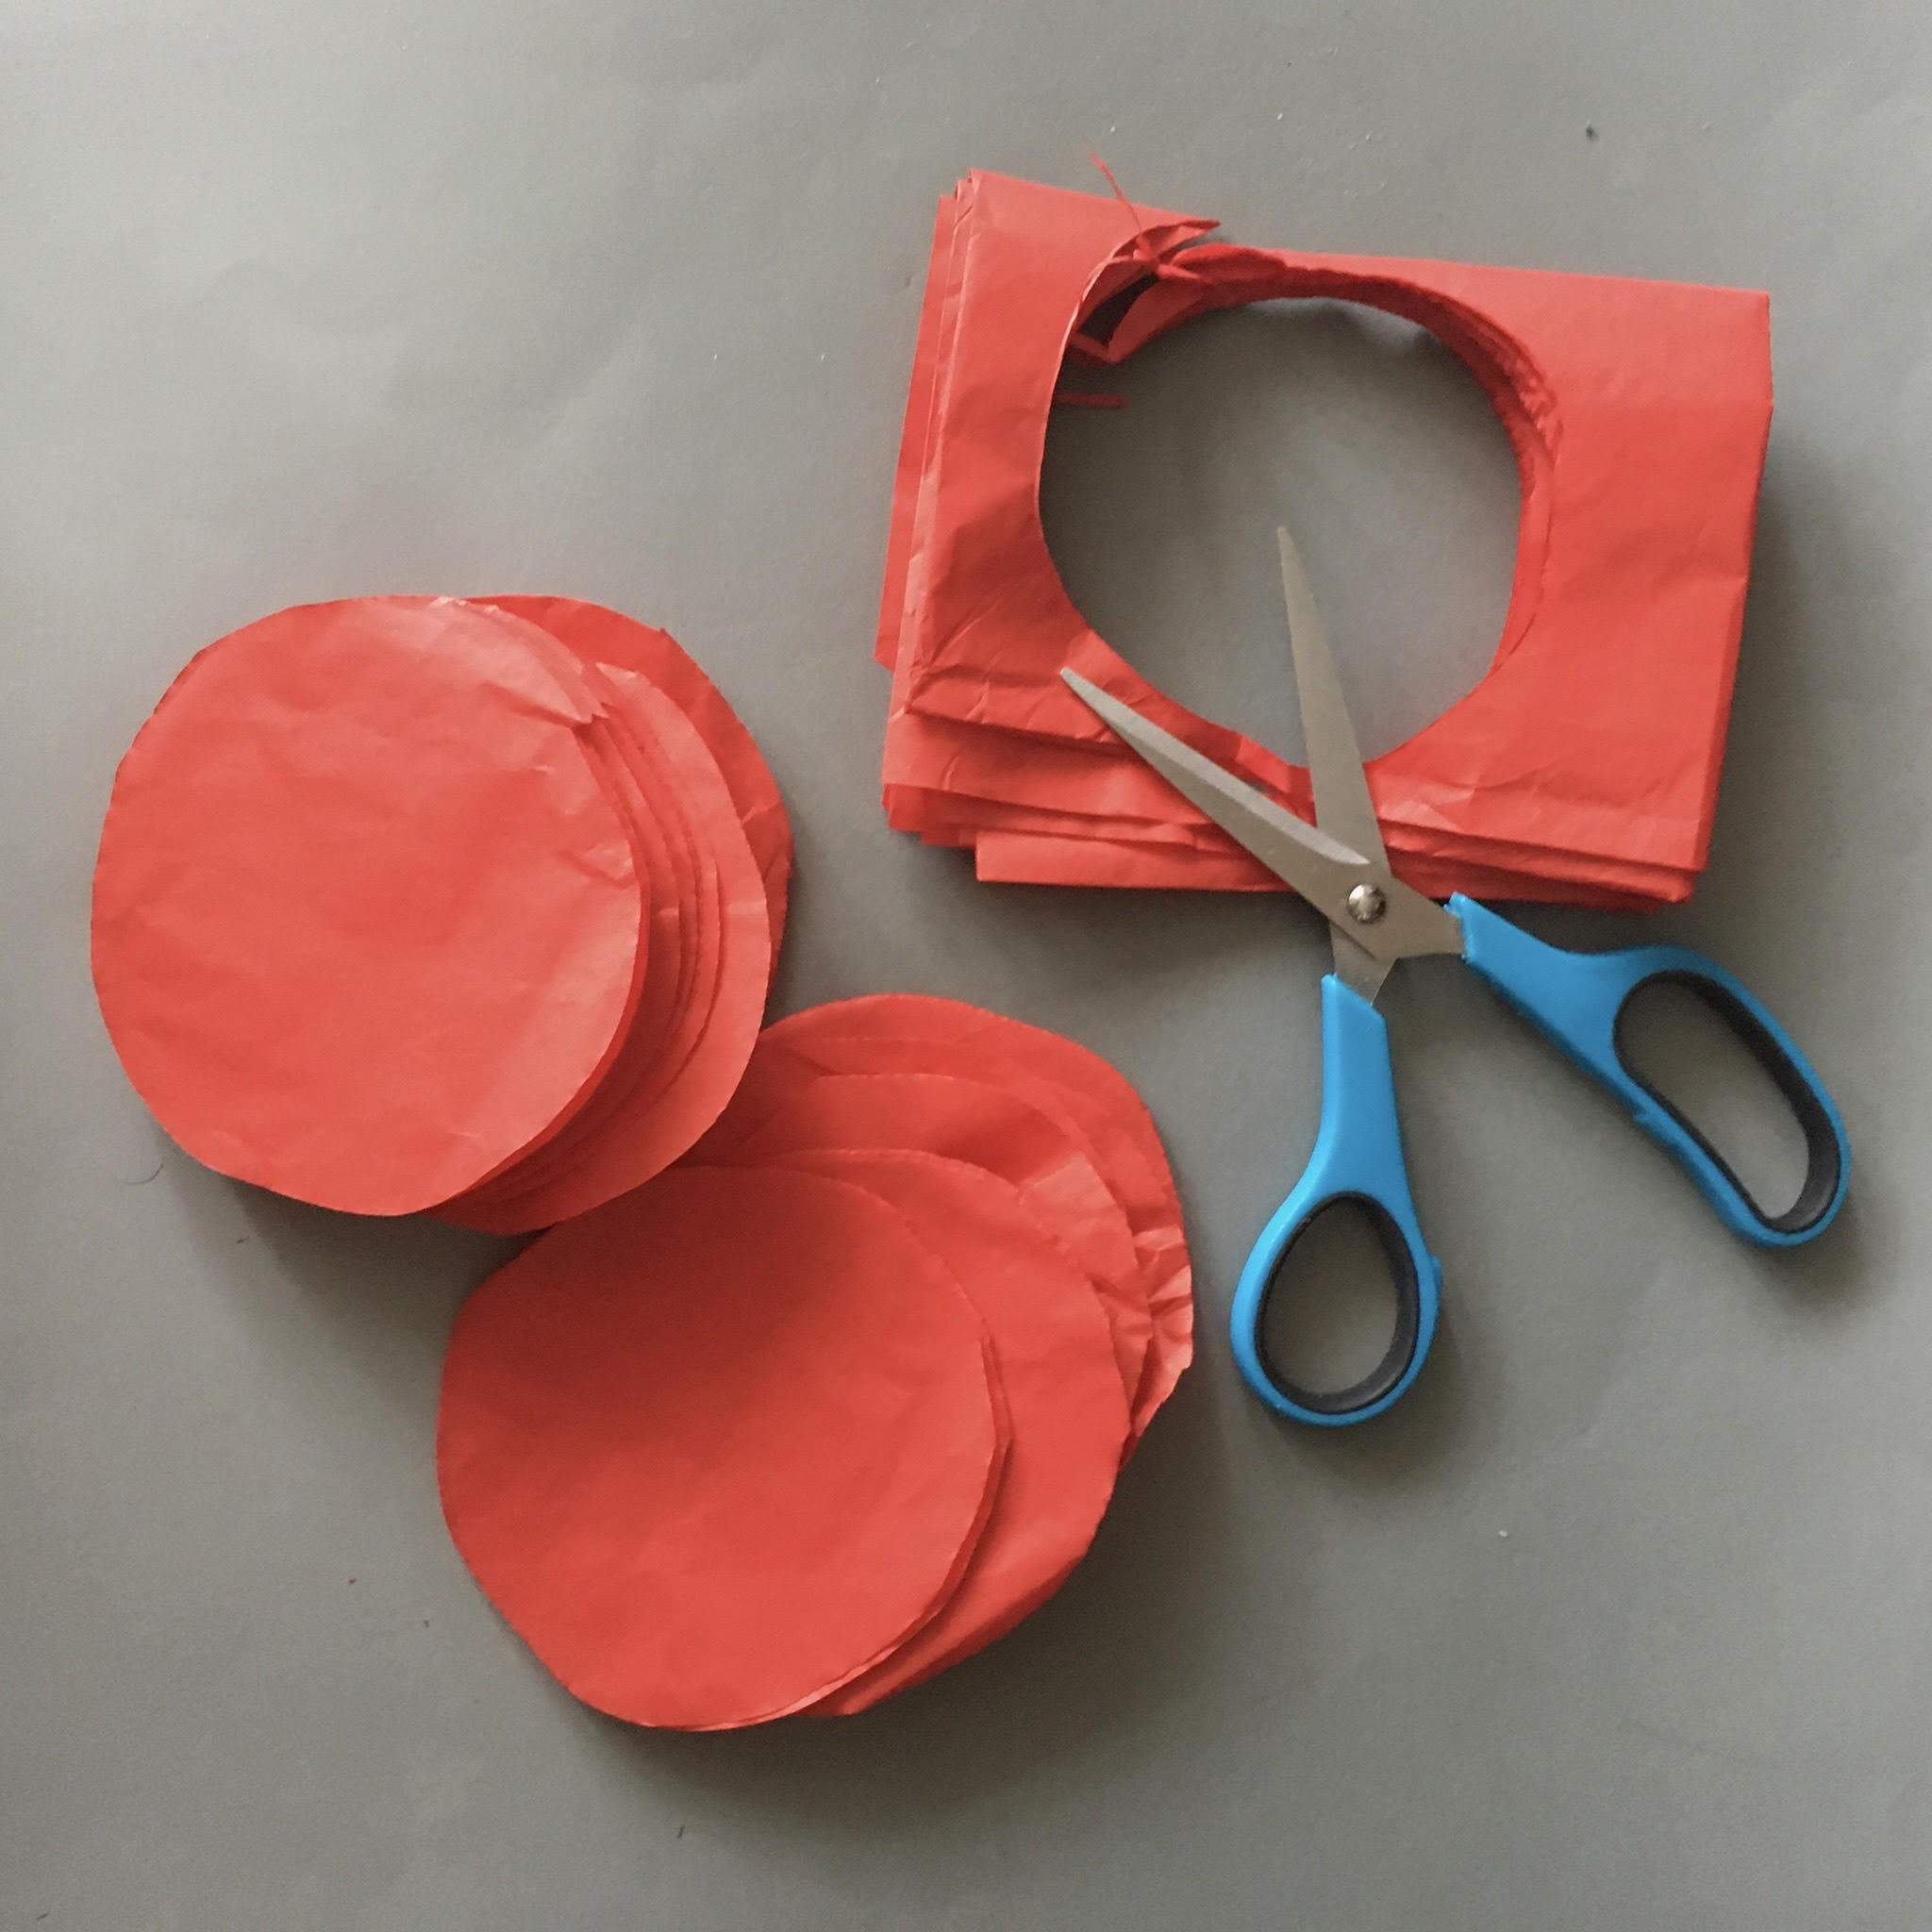 making poppy petals from tissue paper